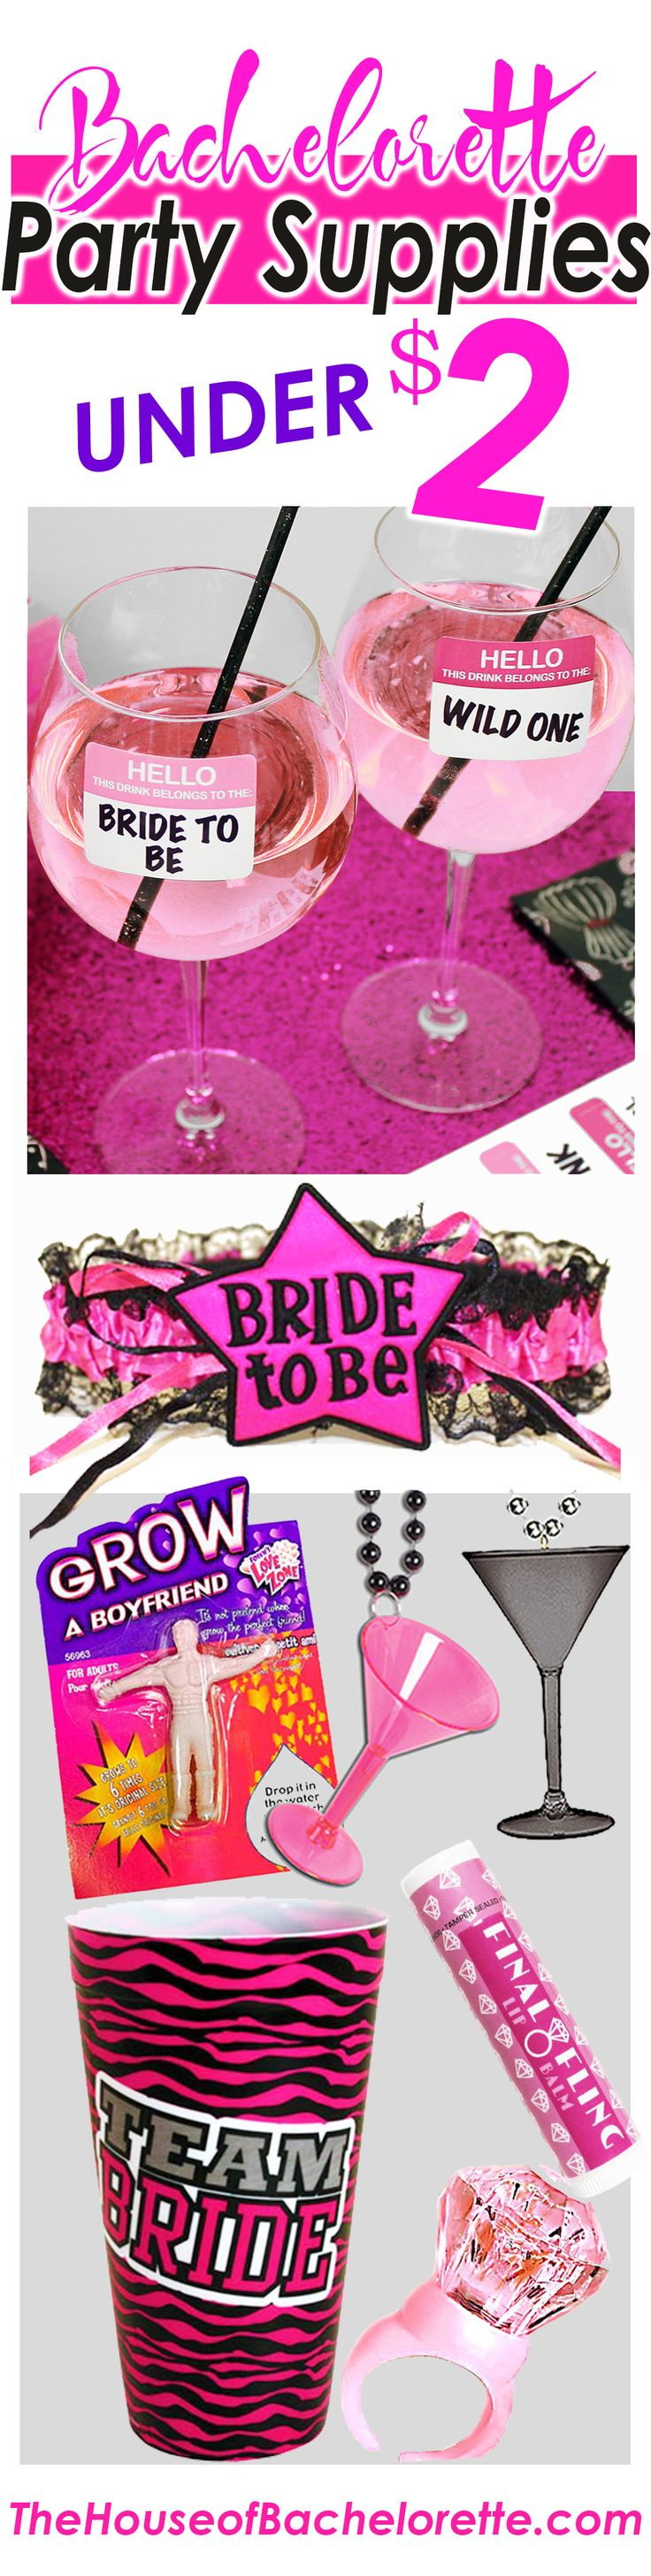 Bachelorette Party Favors, Bachelorette Decorations & more all under $2